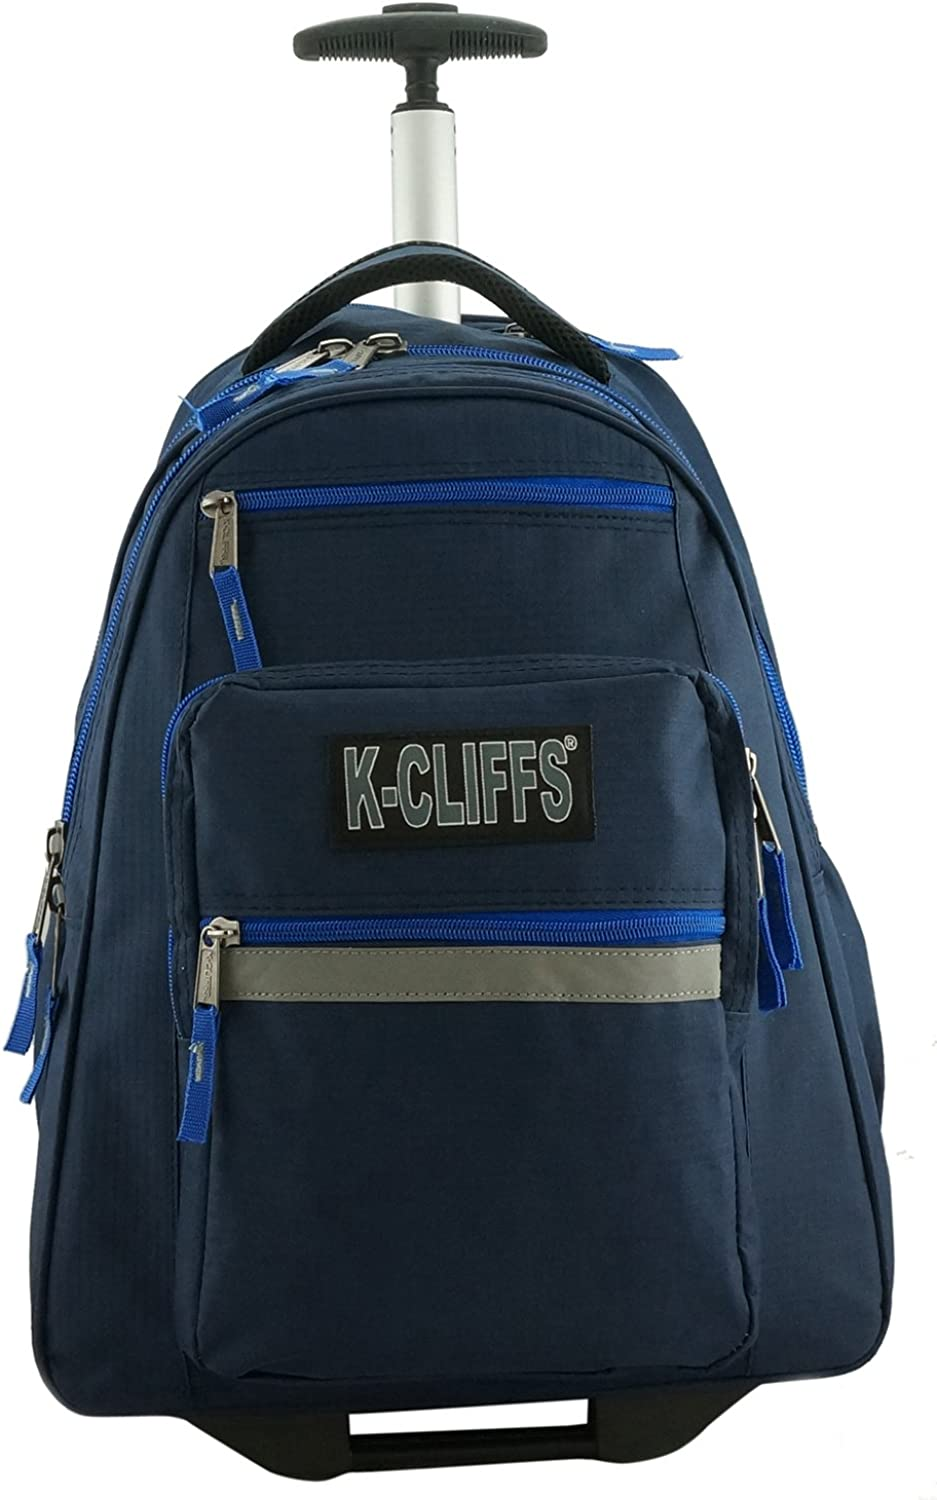 Rolling Backpack School Backpacks with Wheels Deluxe Trolley Book Bag Multiple Pockets (Navy)